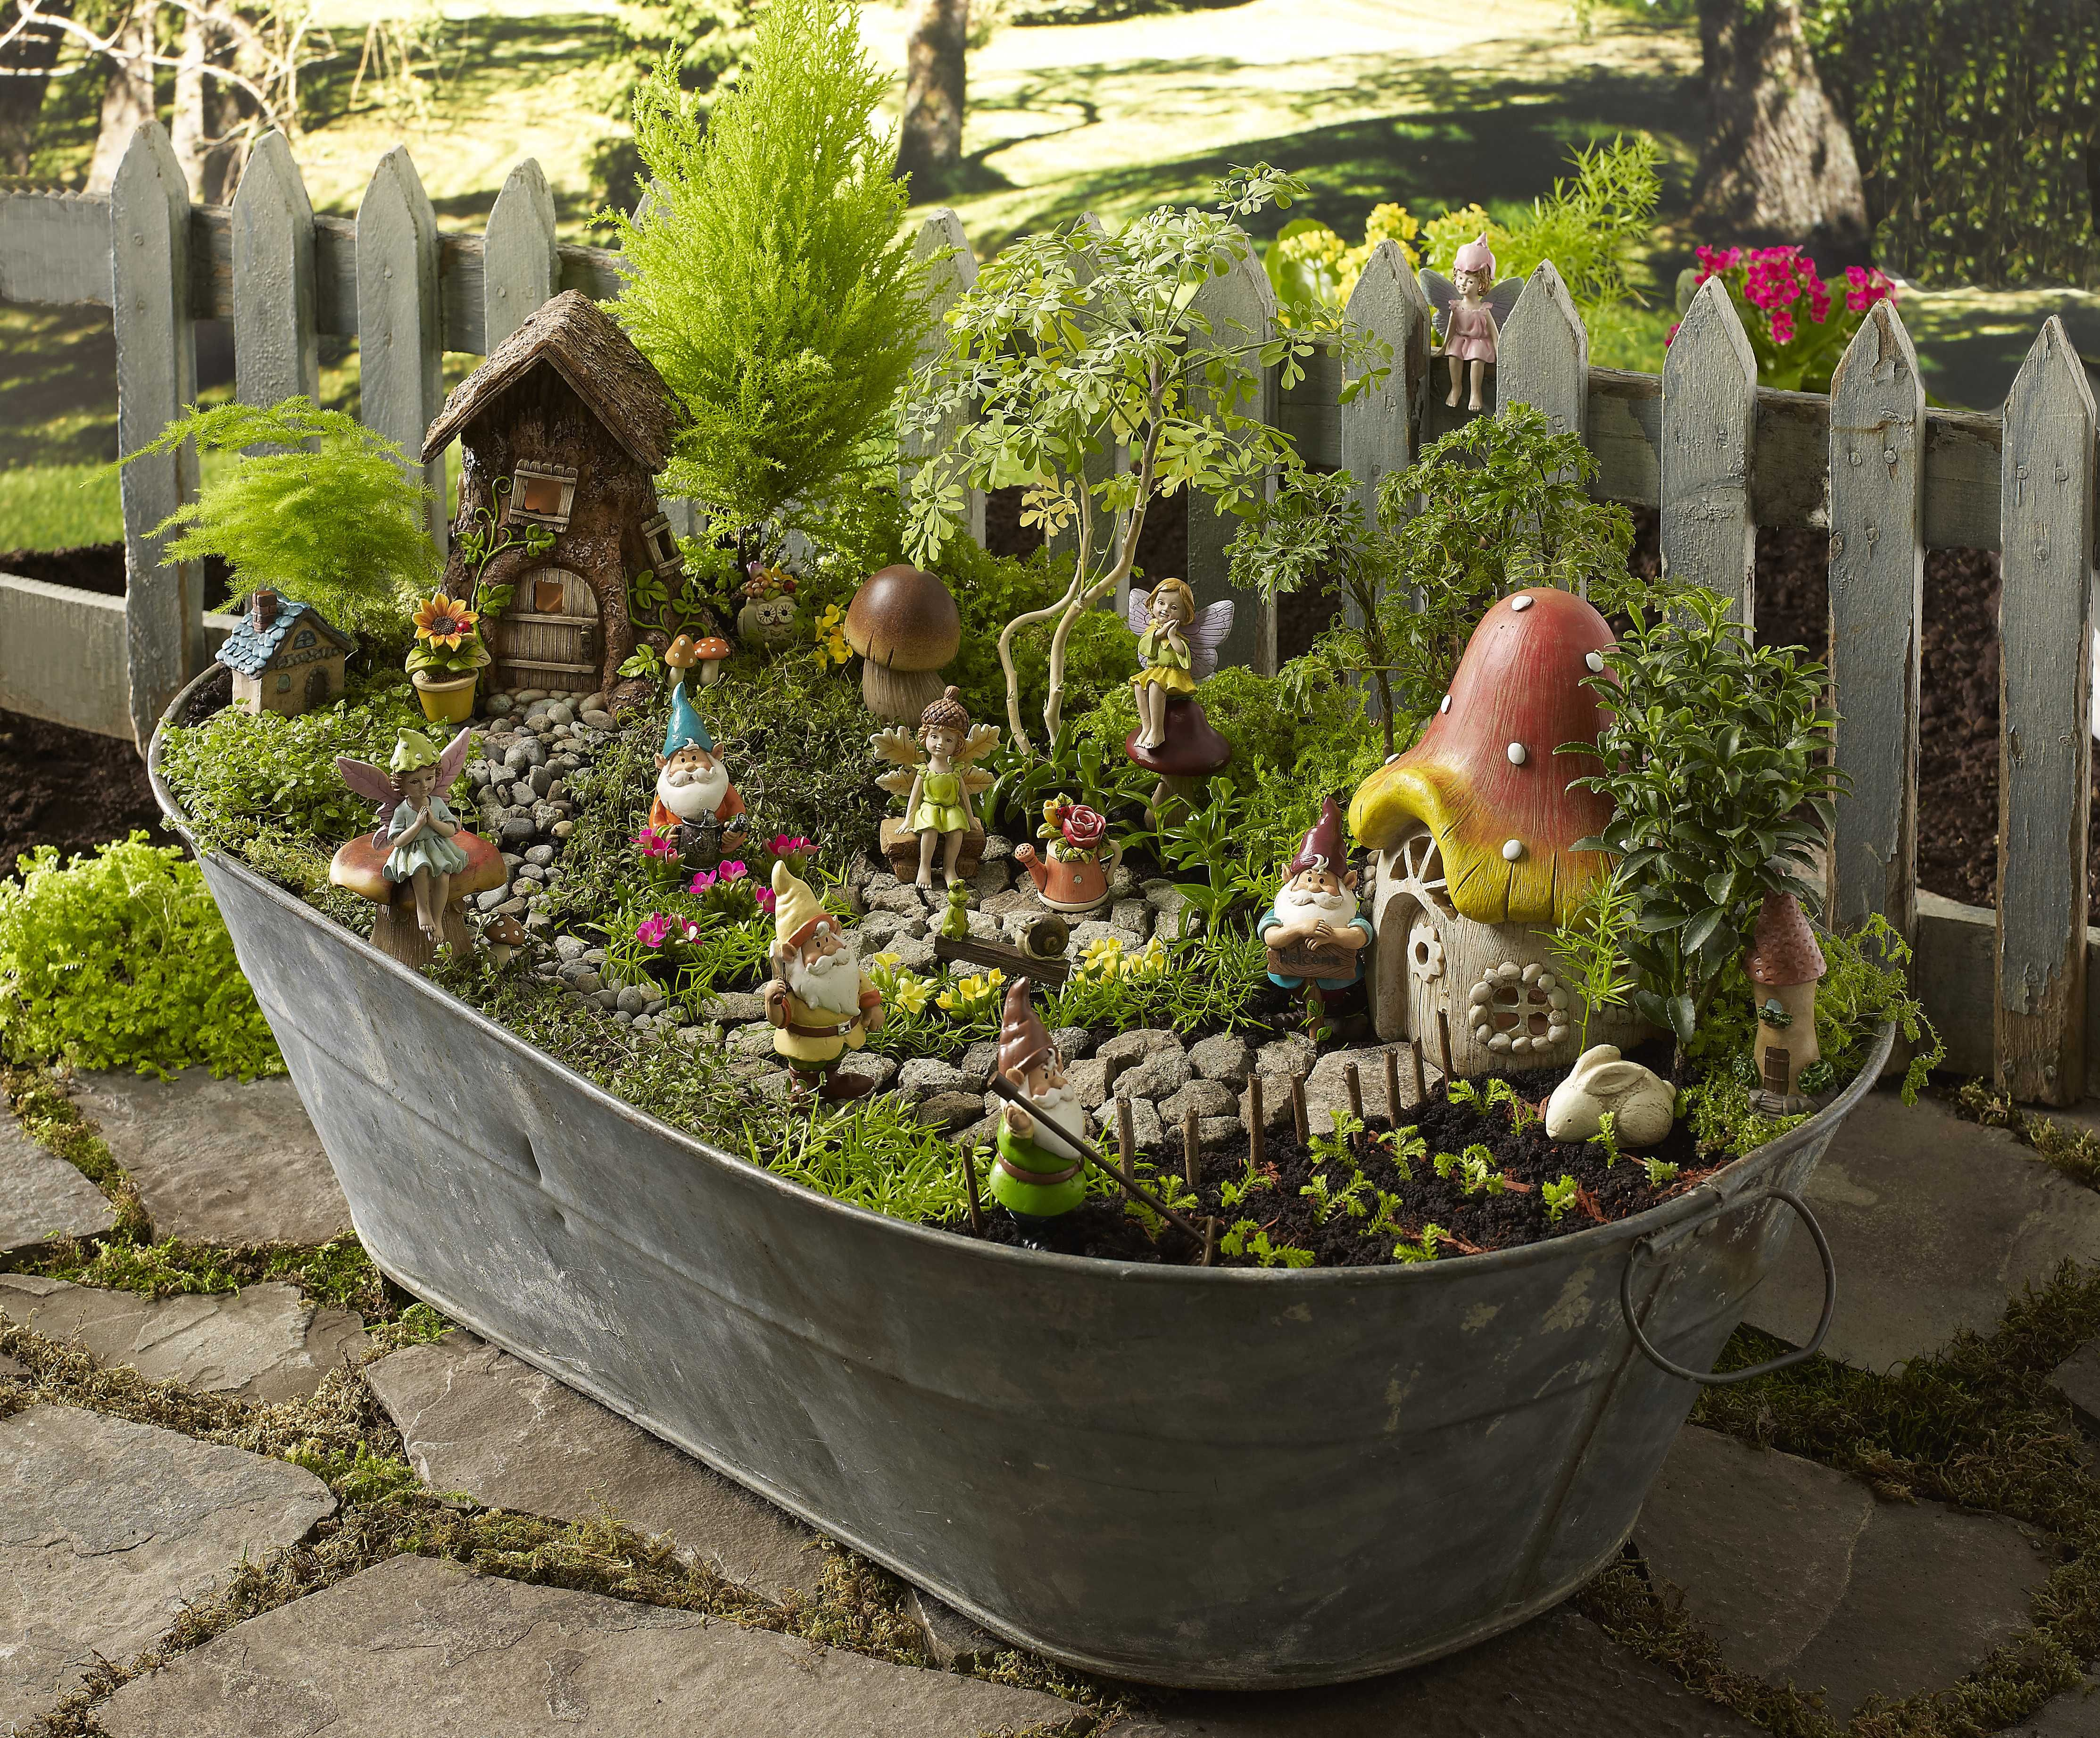 The fun of designing a fairy garden is finding unusual containers ...